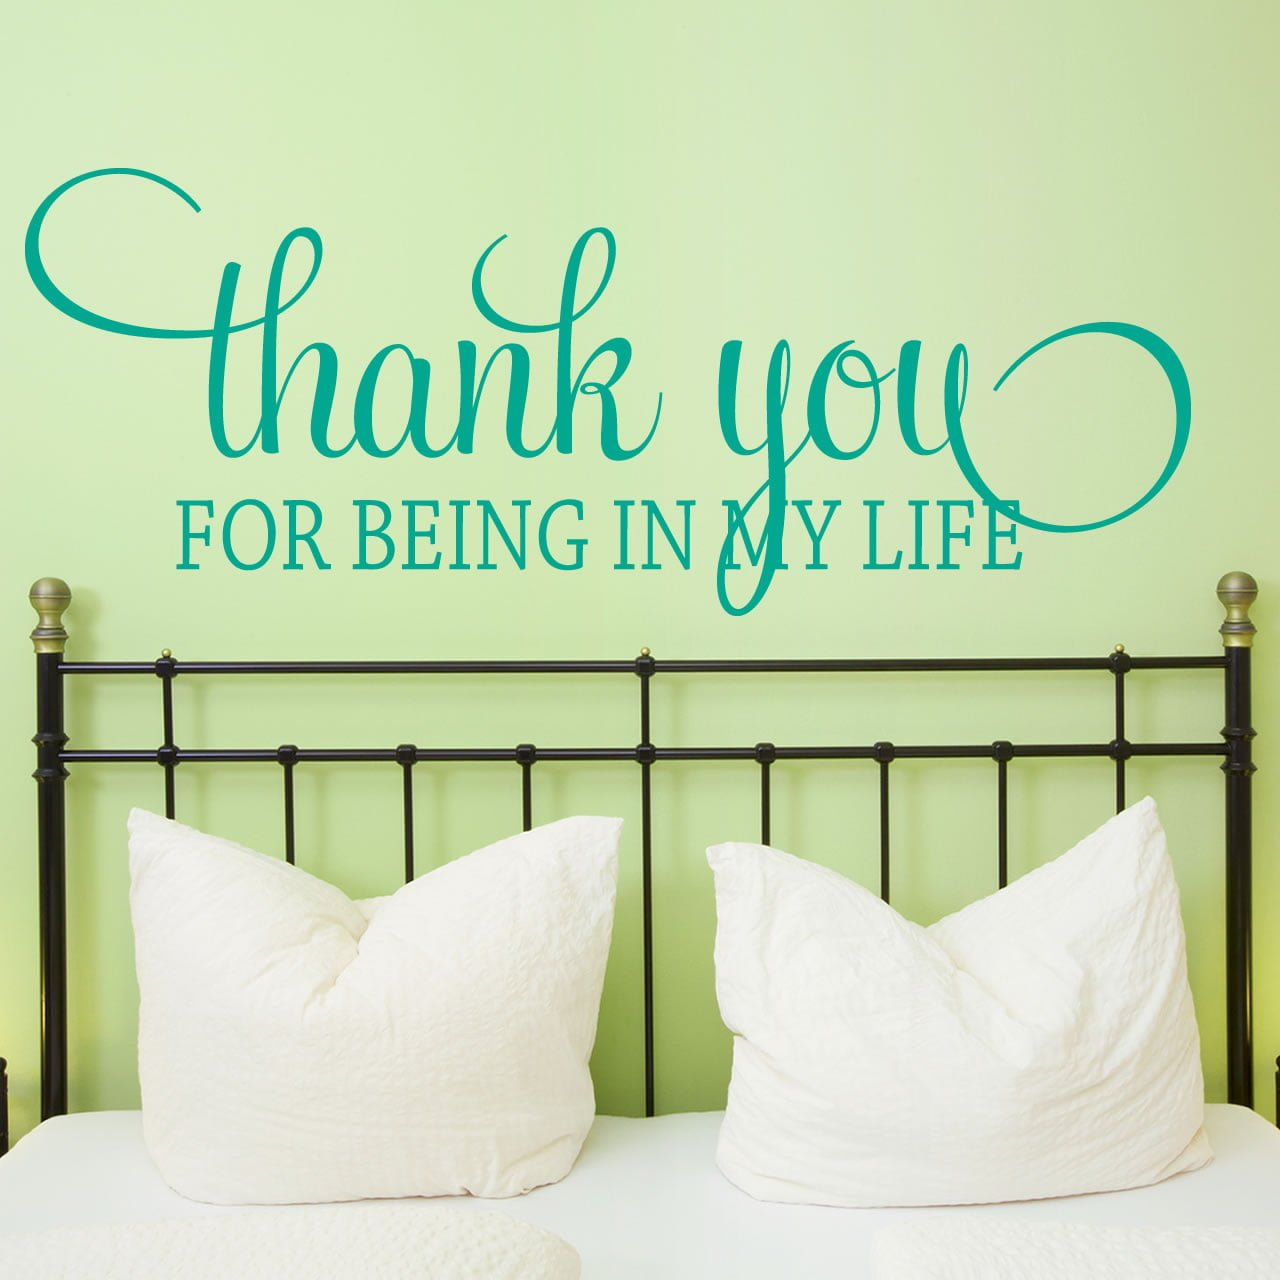 Thank you for being in my life quote wall sticker world of wall thank you for being in my life quote wall sticker world of wall stickers amipublicfo Images